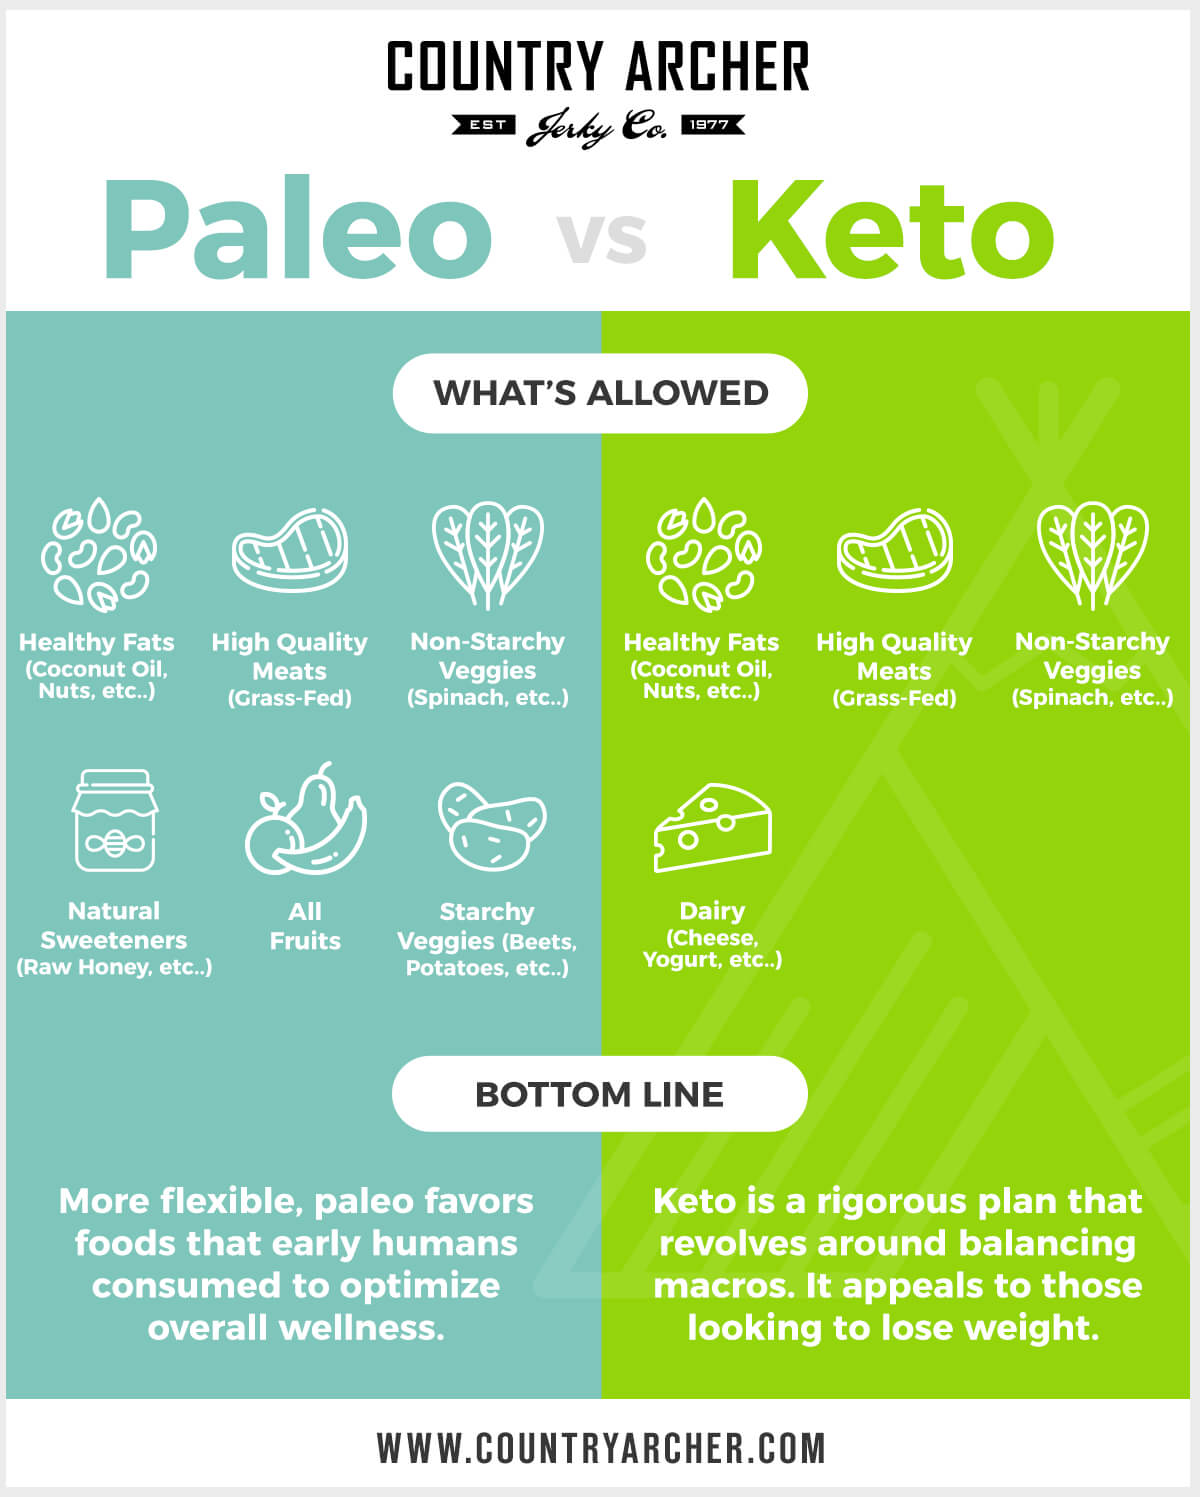 paleo vs. keto infographic from Country Archer